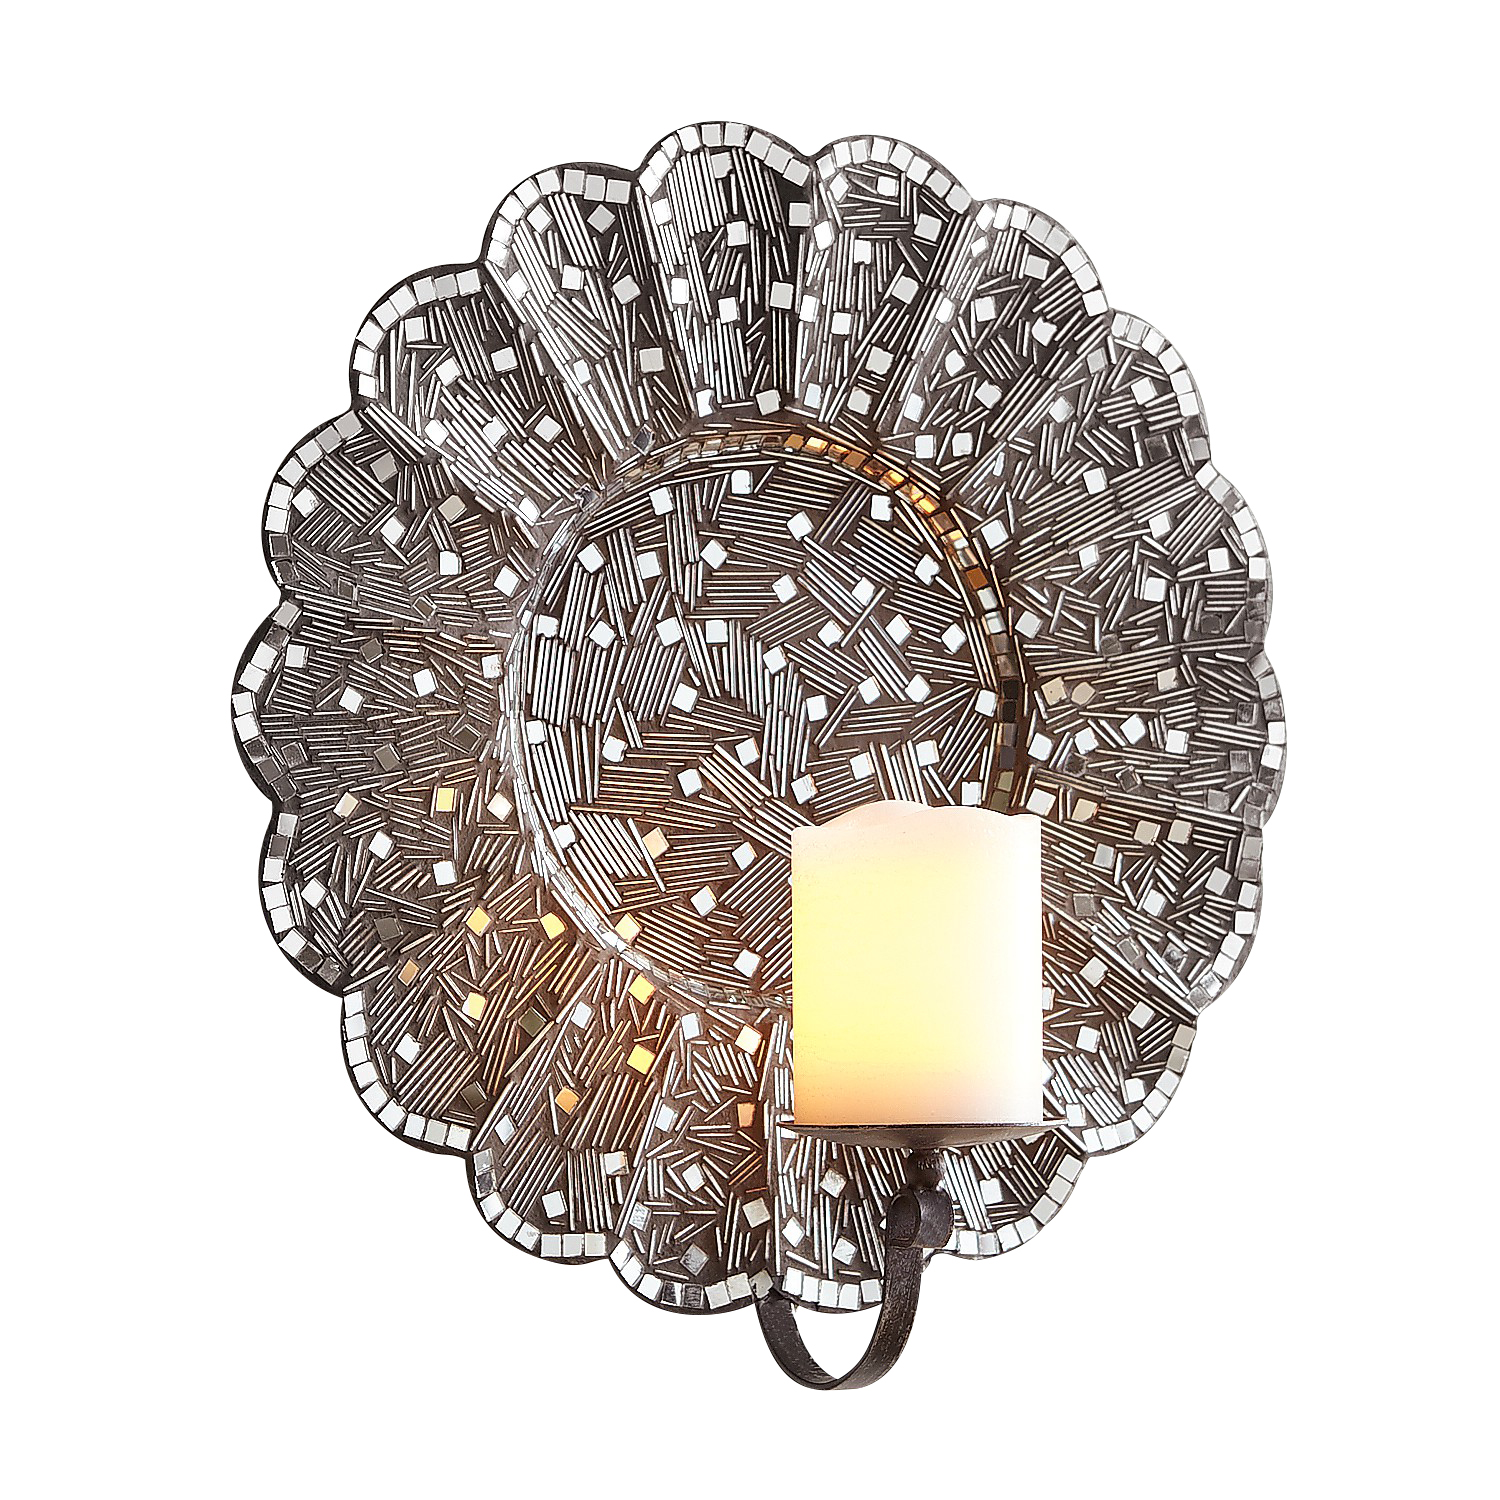 Silver Mosaic Flower Candle Wall Sconce - Pier1 on Candle Wall Sconces With Flowers id=37036